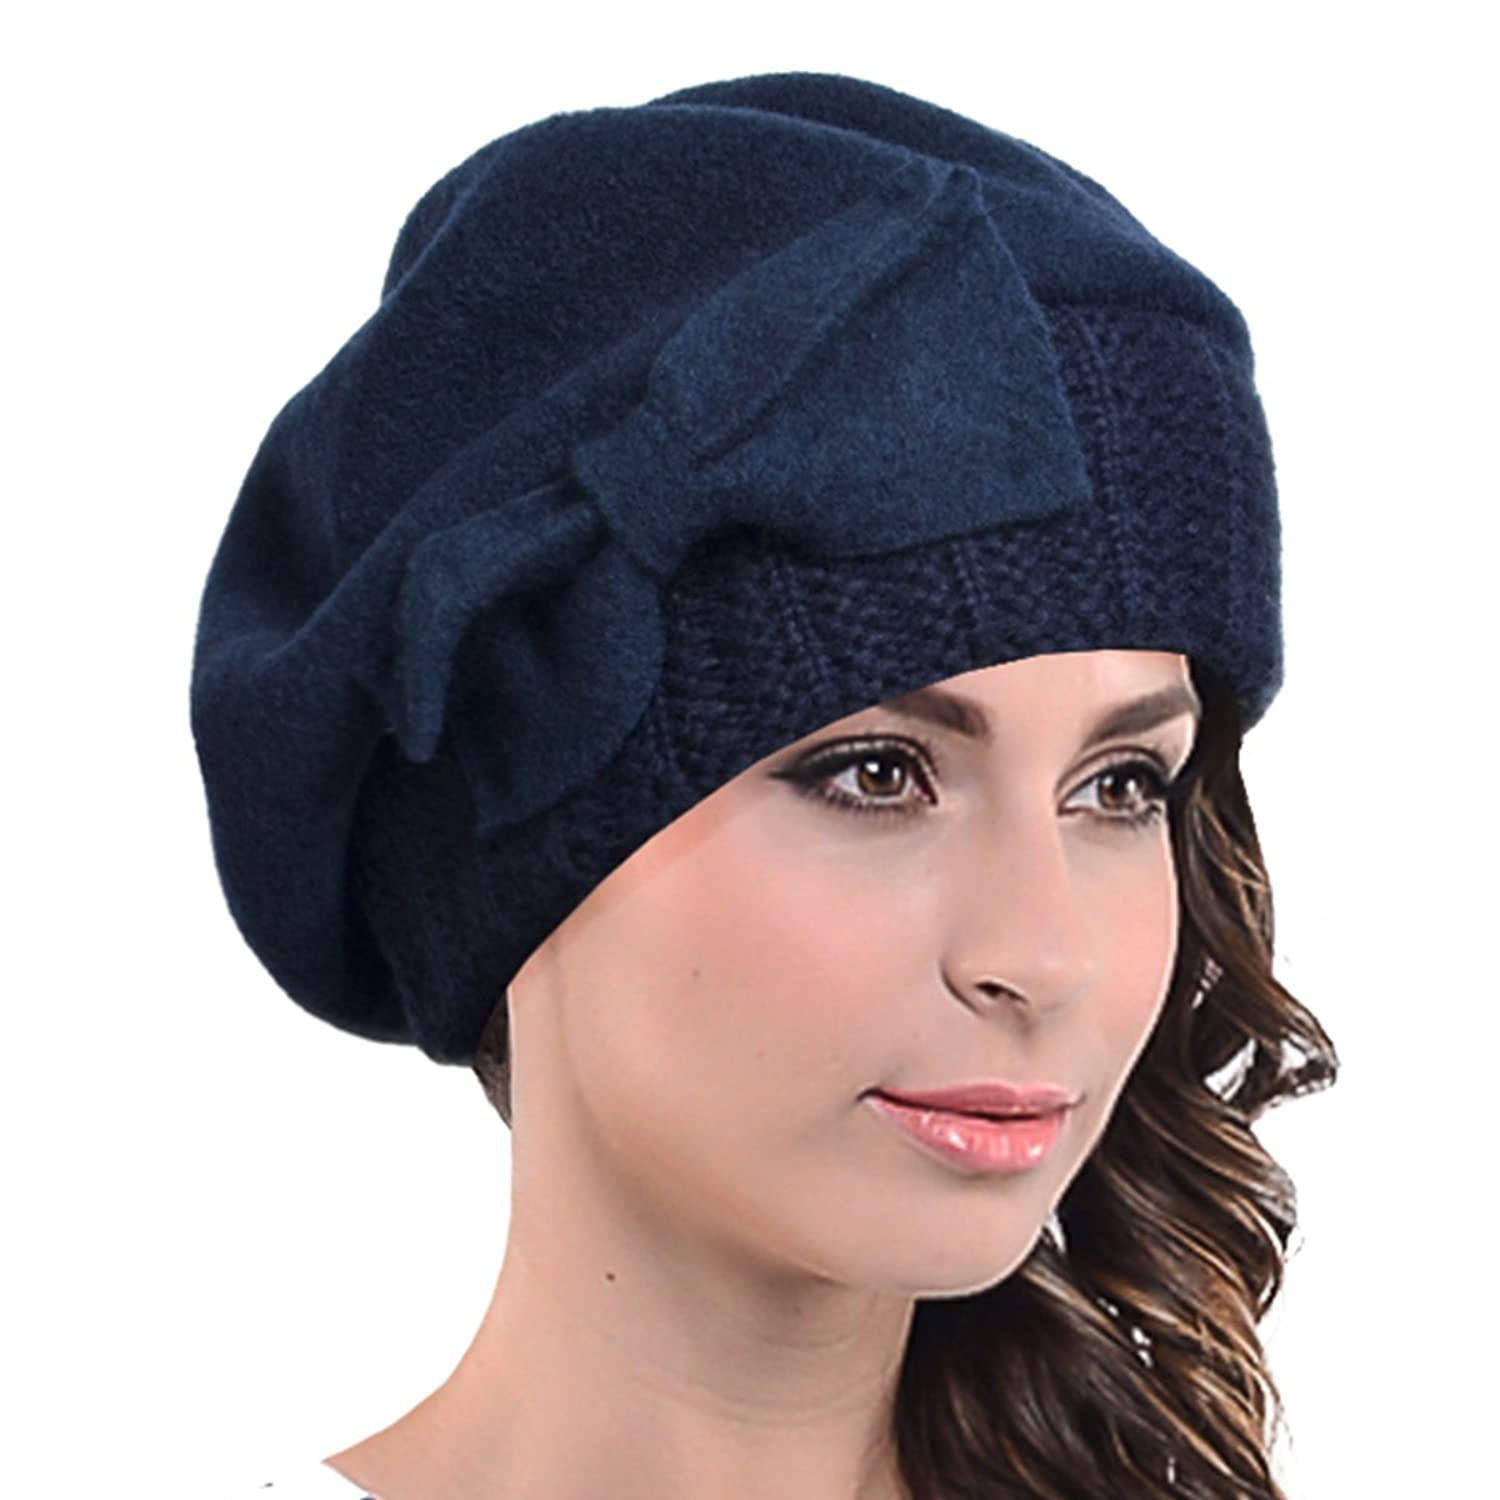 1920s Accessories | Great Gatsby Accessories Guide Lady French Beret Wool Beret Chic Beanie Winter Hat Jf-br034 $21.99 AT vintagedancer.com